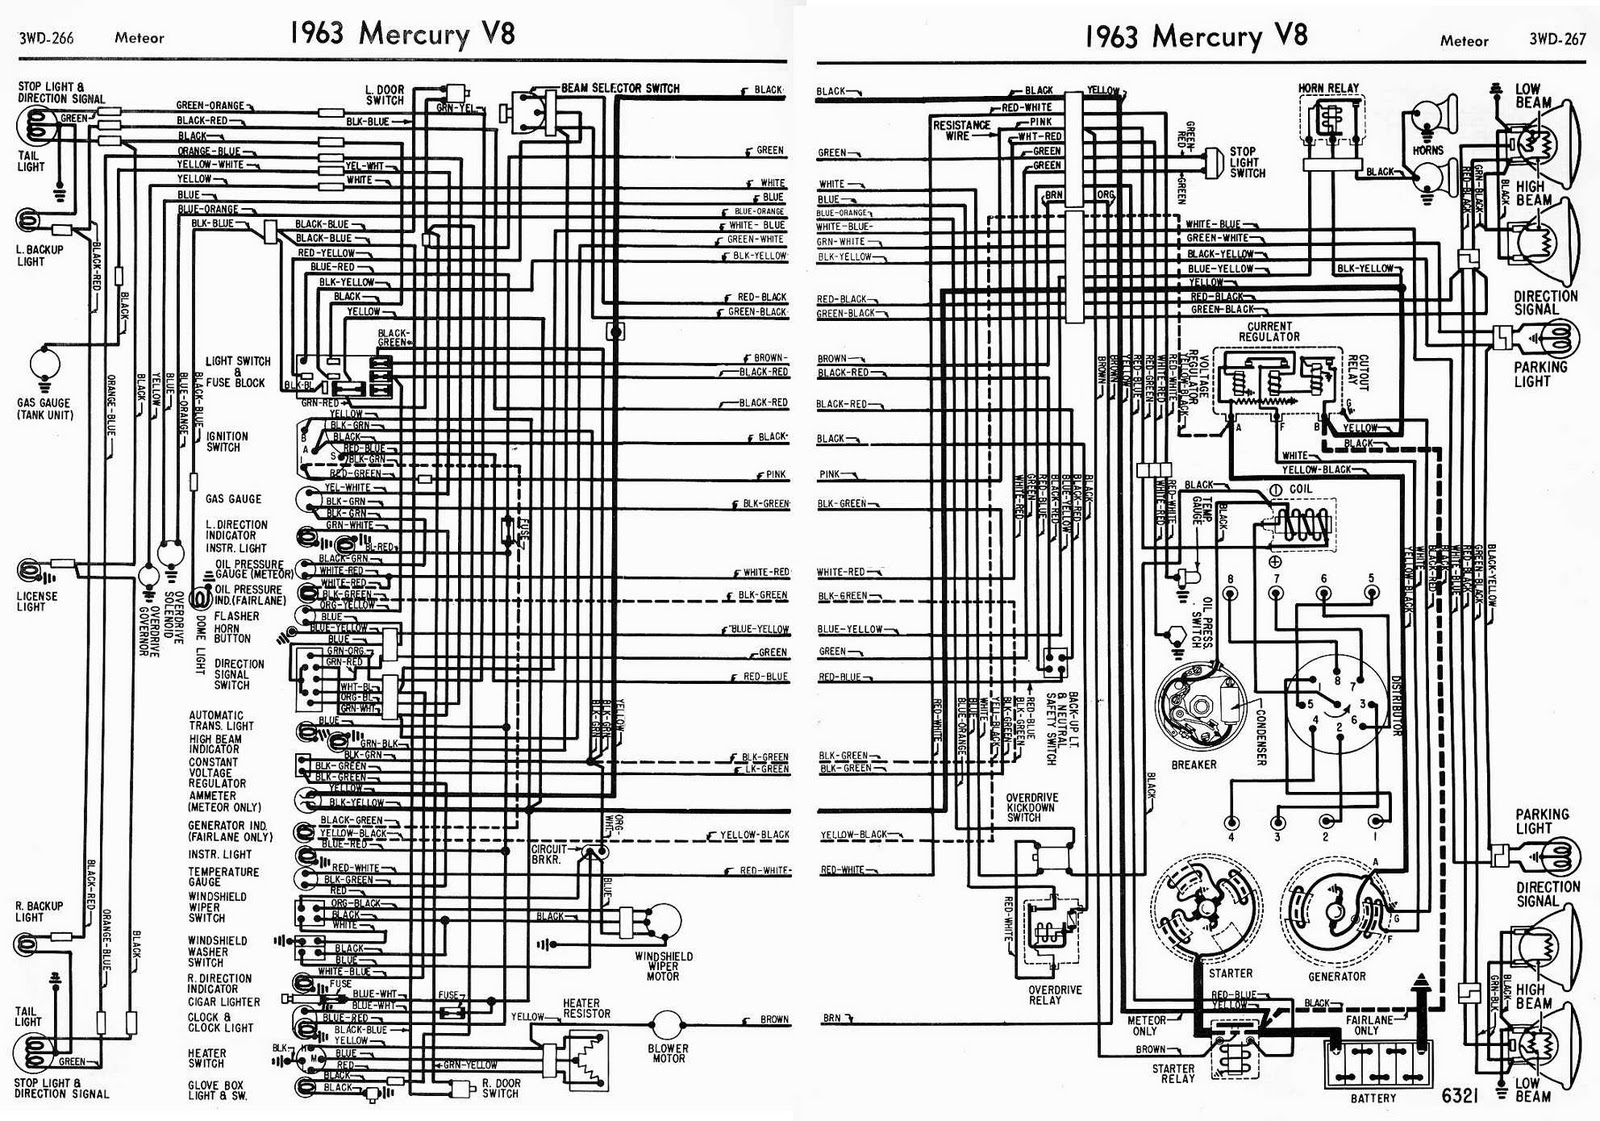 Ford Galaxy Wiring Diagram Download 35 Images 1970 Ltd Diagrams 911 1963 Mercury V8 Meteor Complete